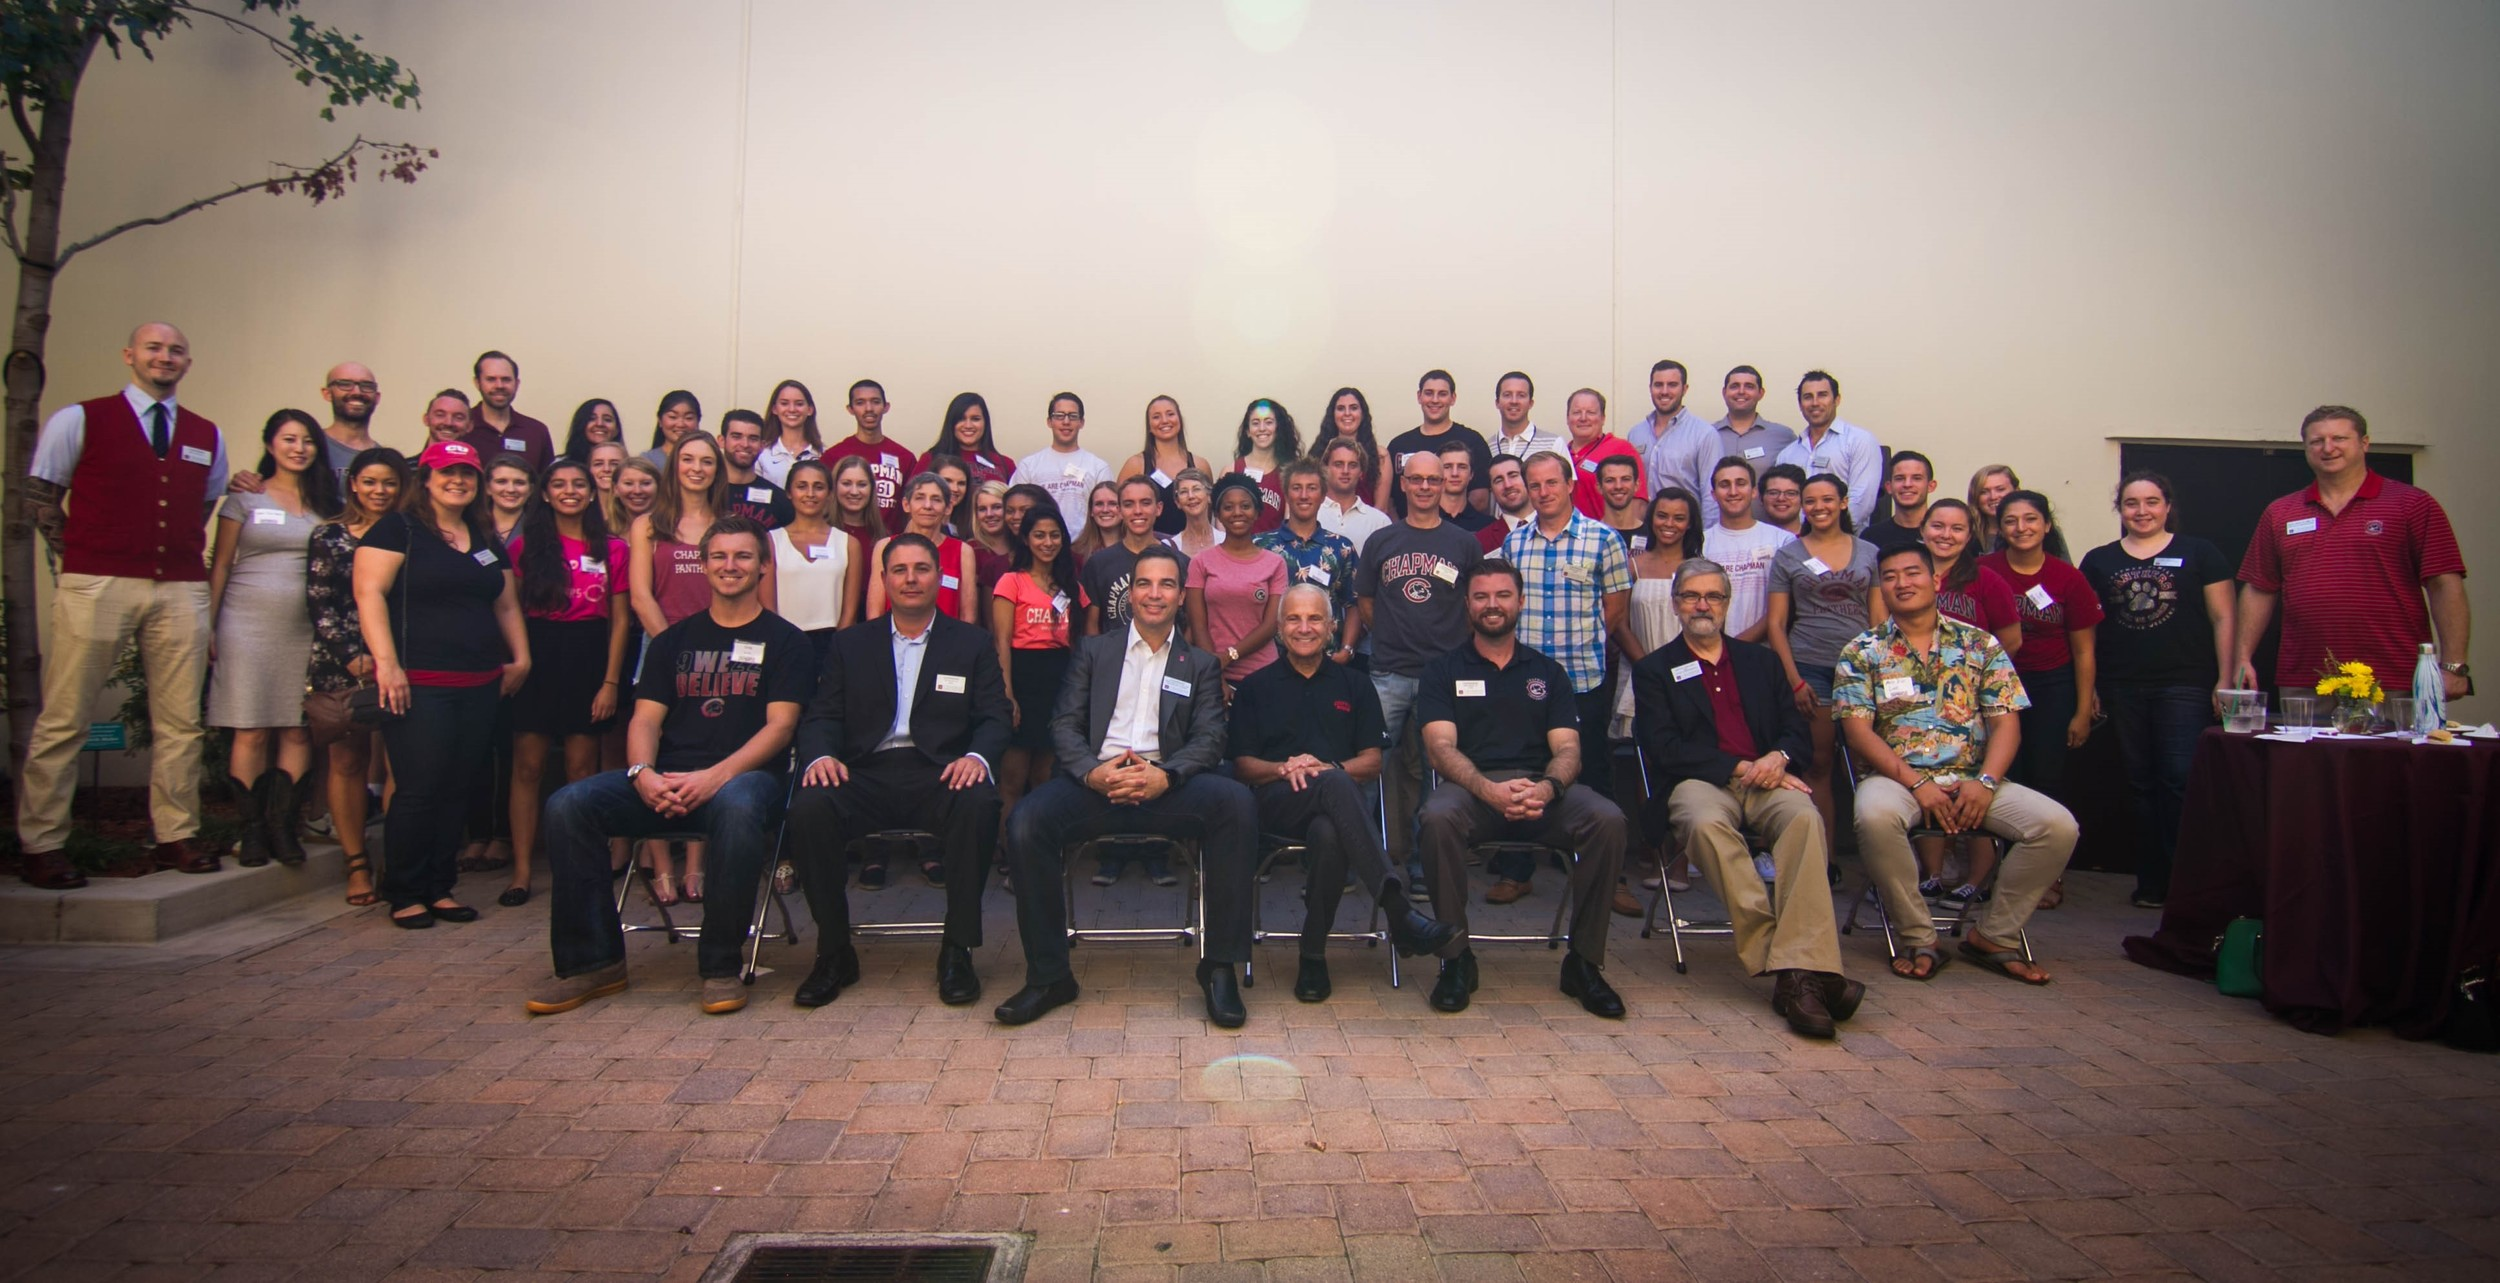 Chapman50 student scholars and members network in October 2015.